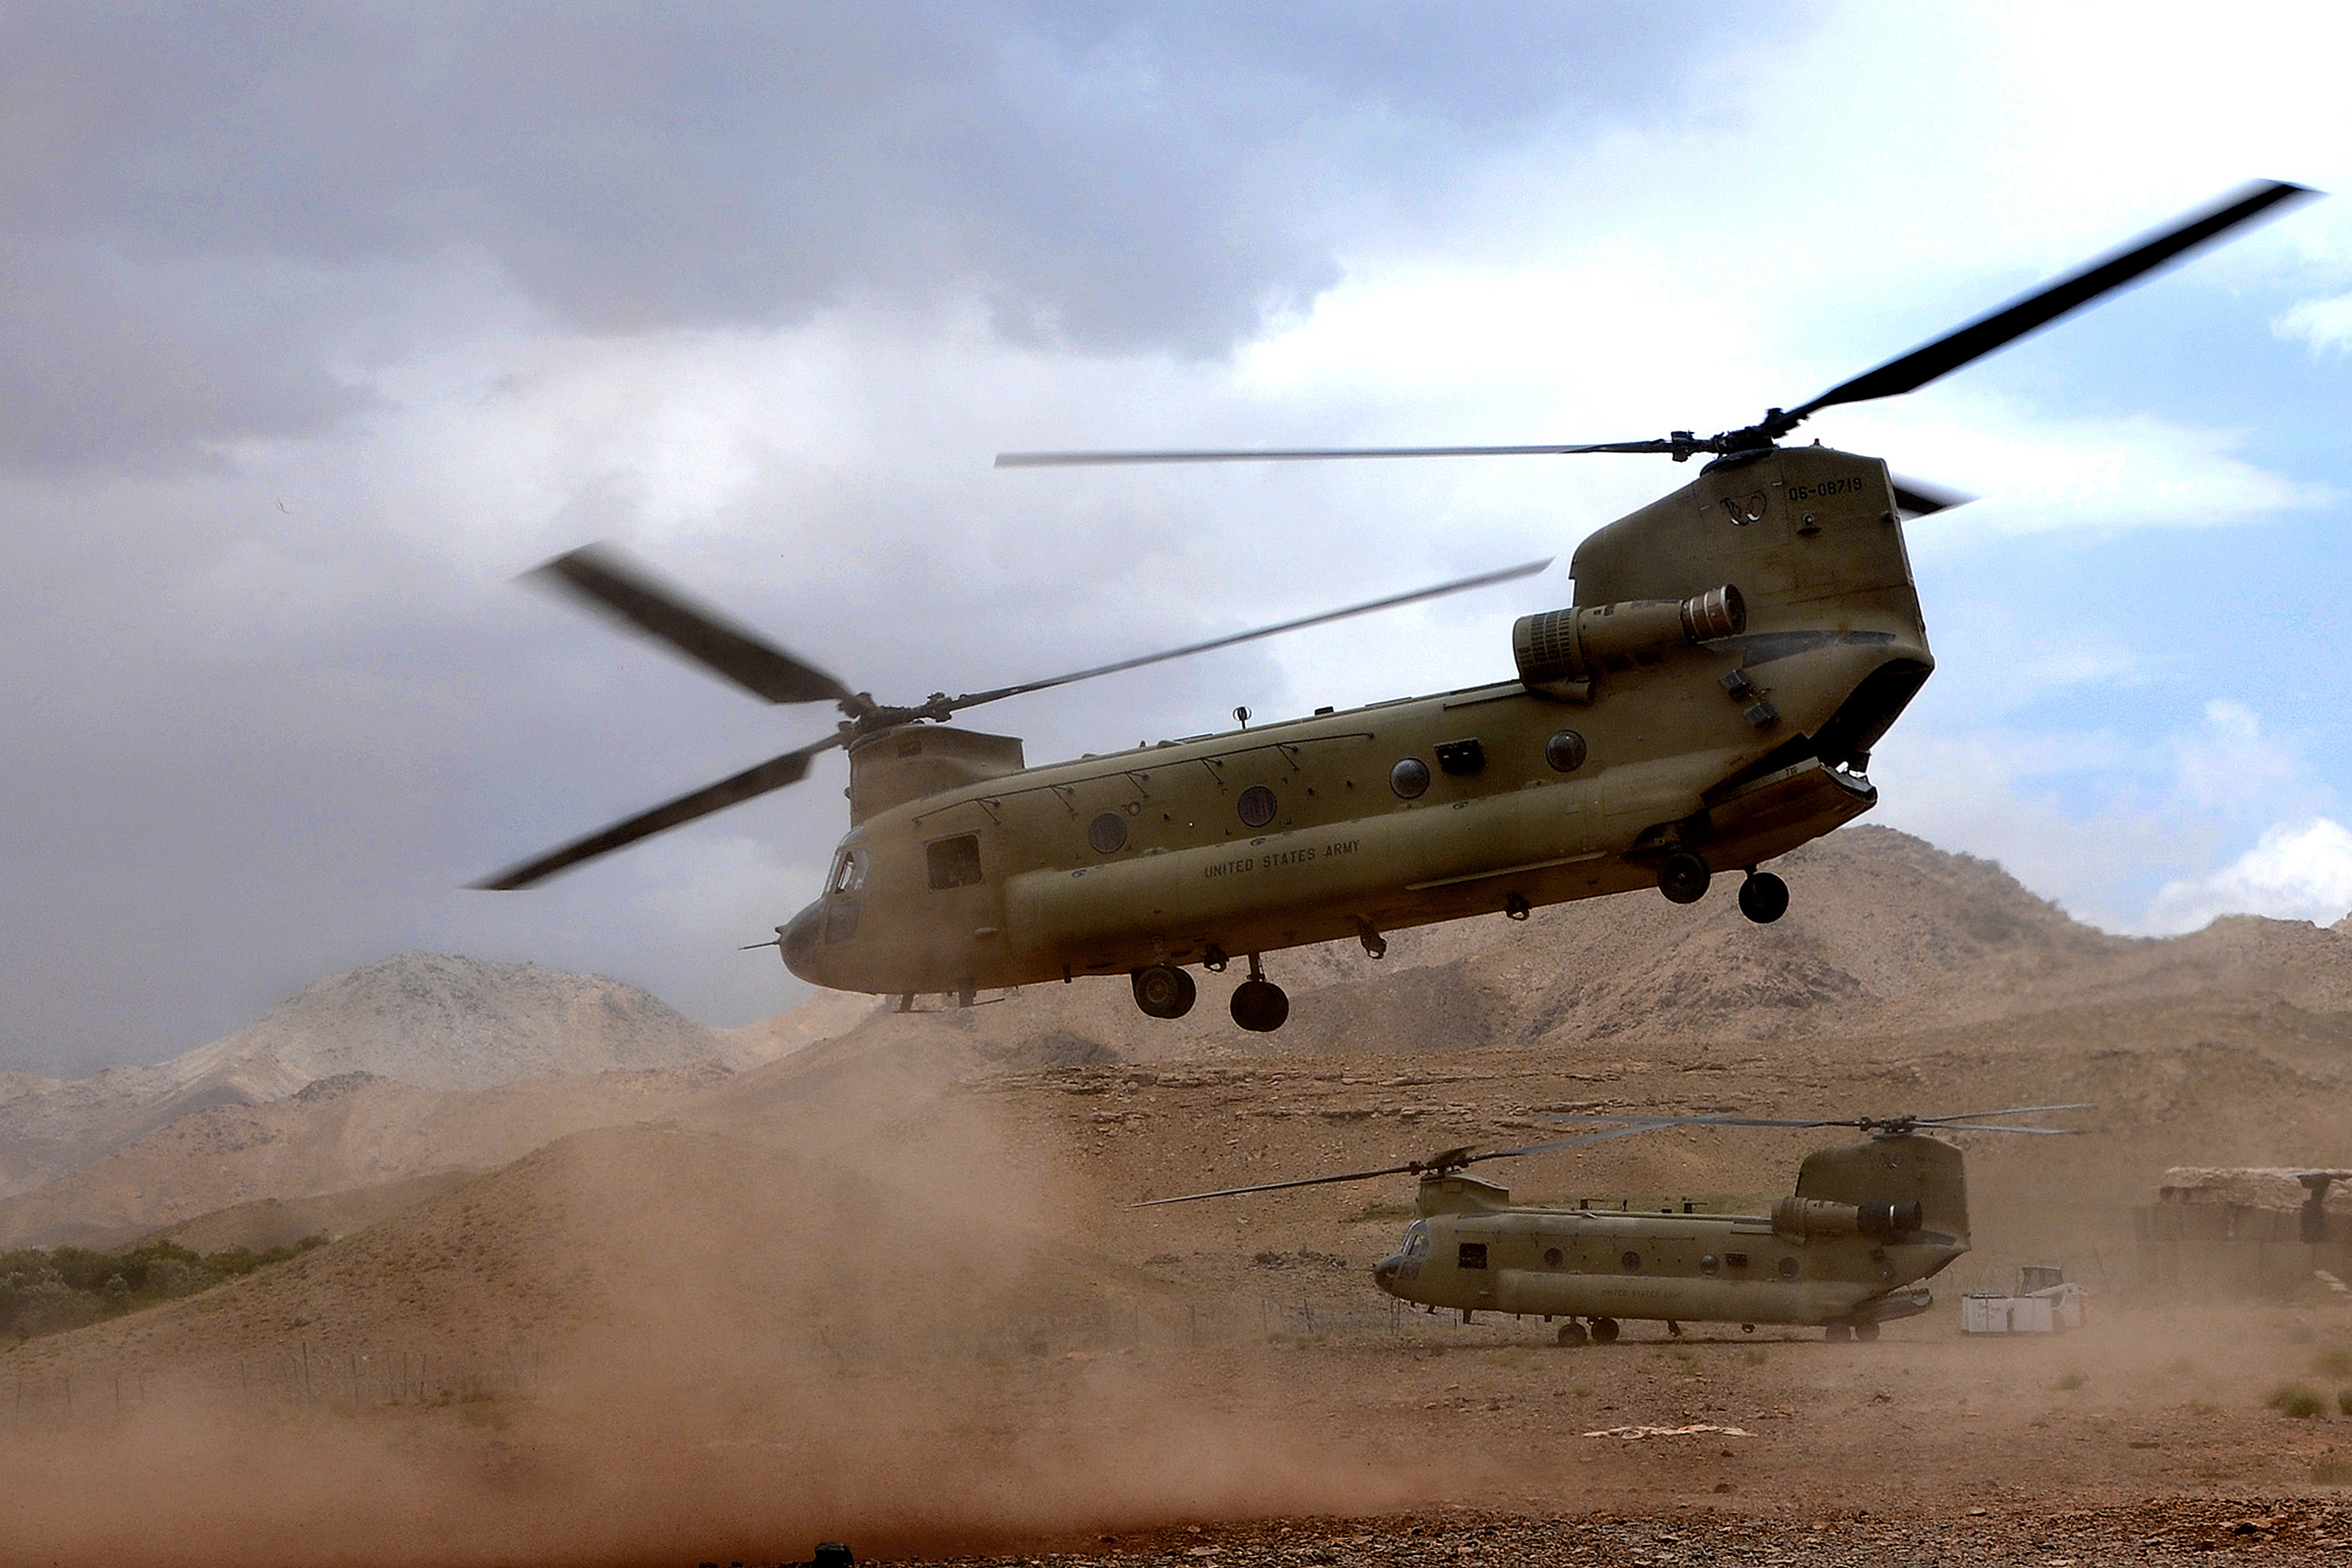 File:CH-47 Chinook Afghanistan 101st Airborne 2010.jpg